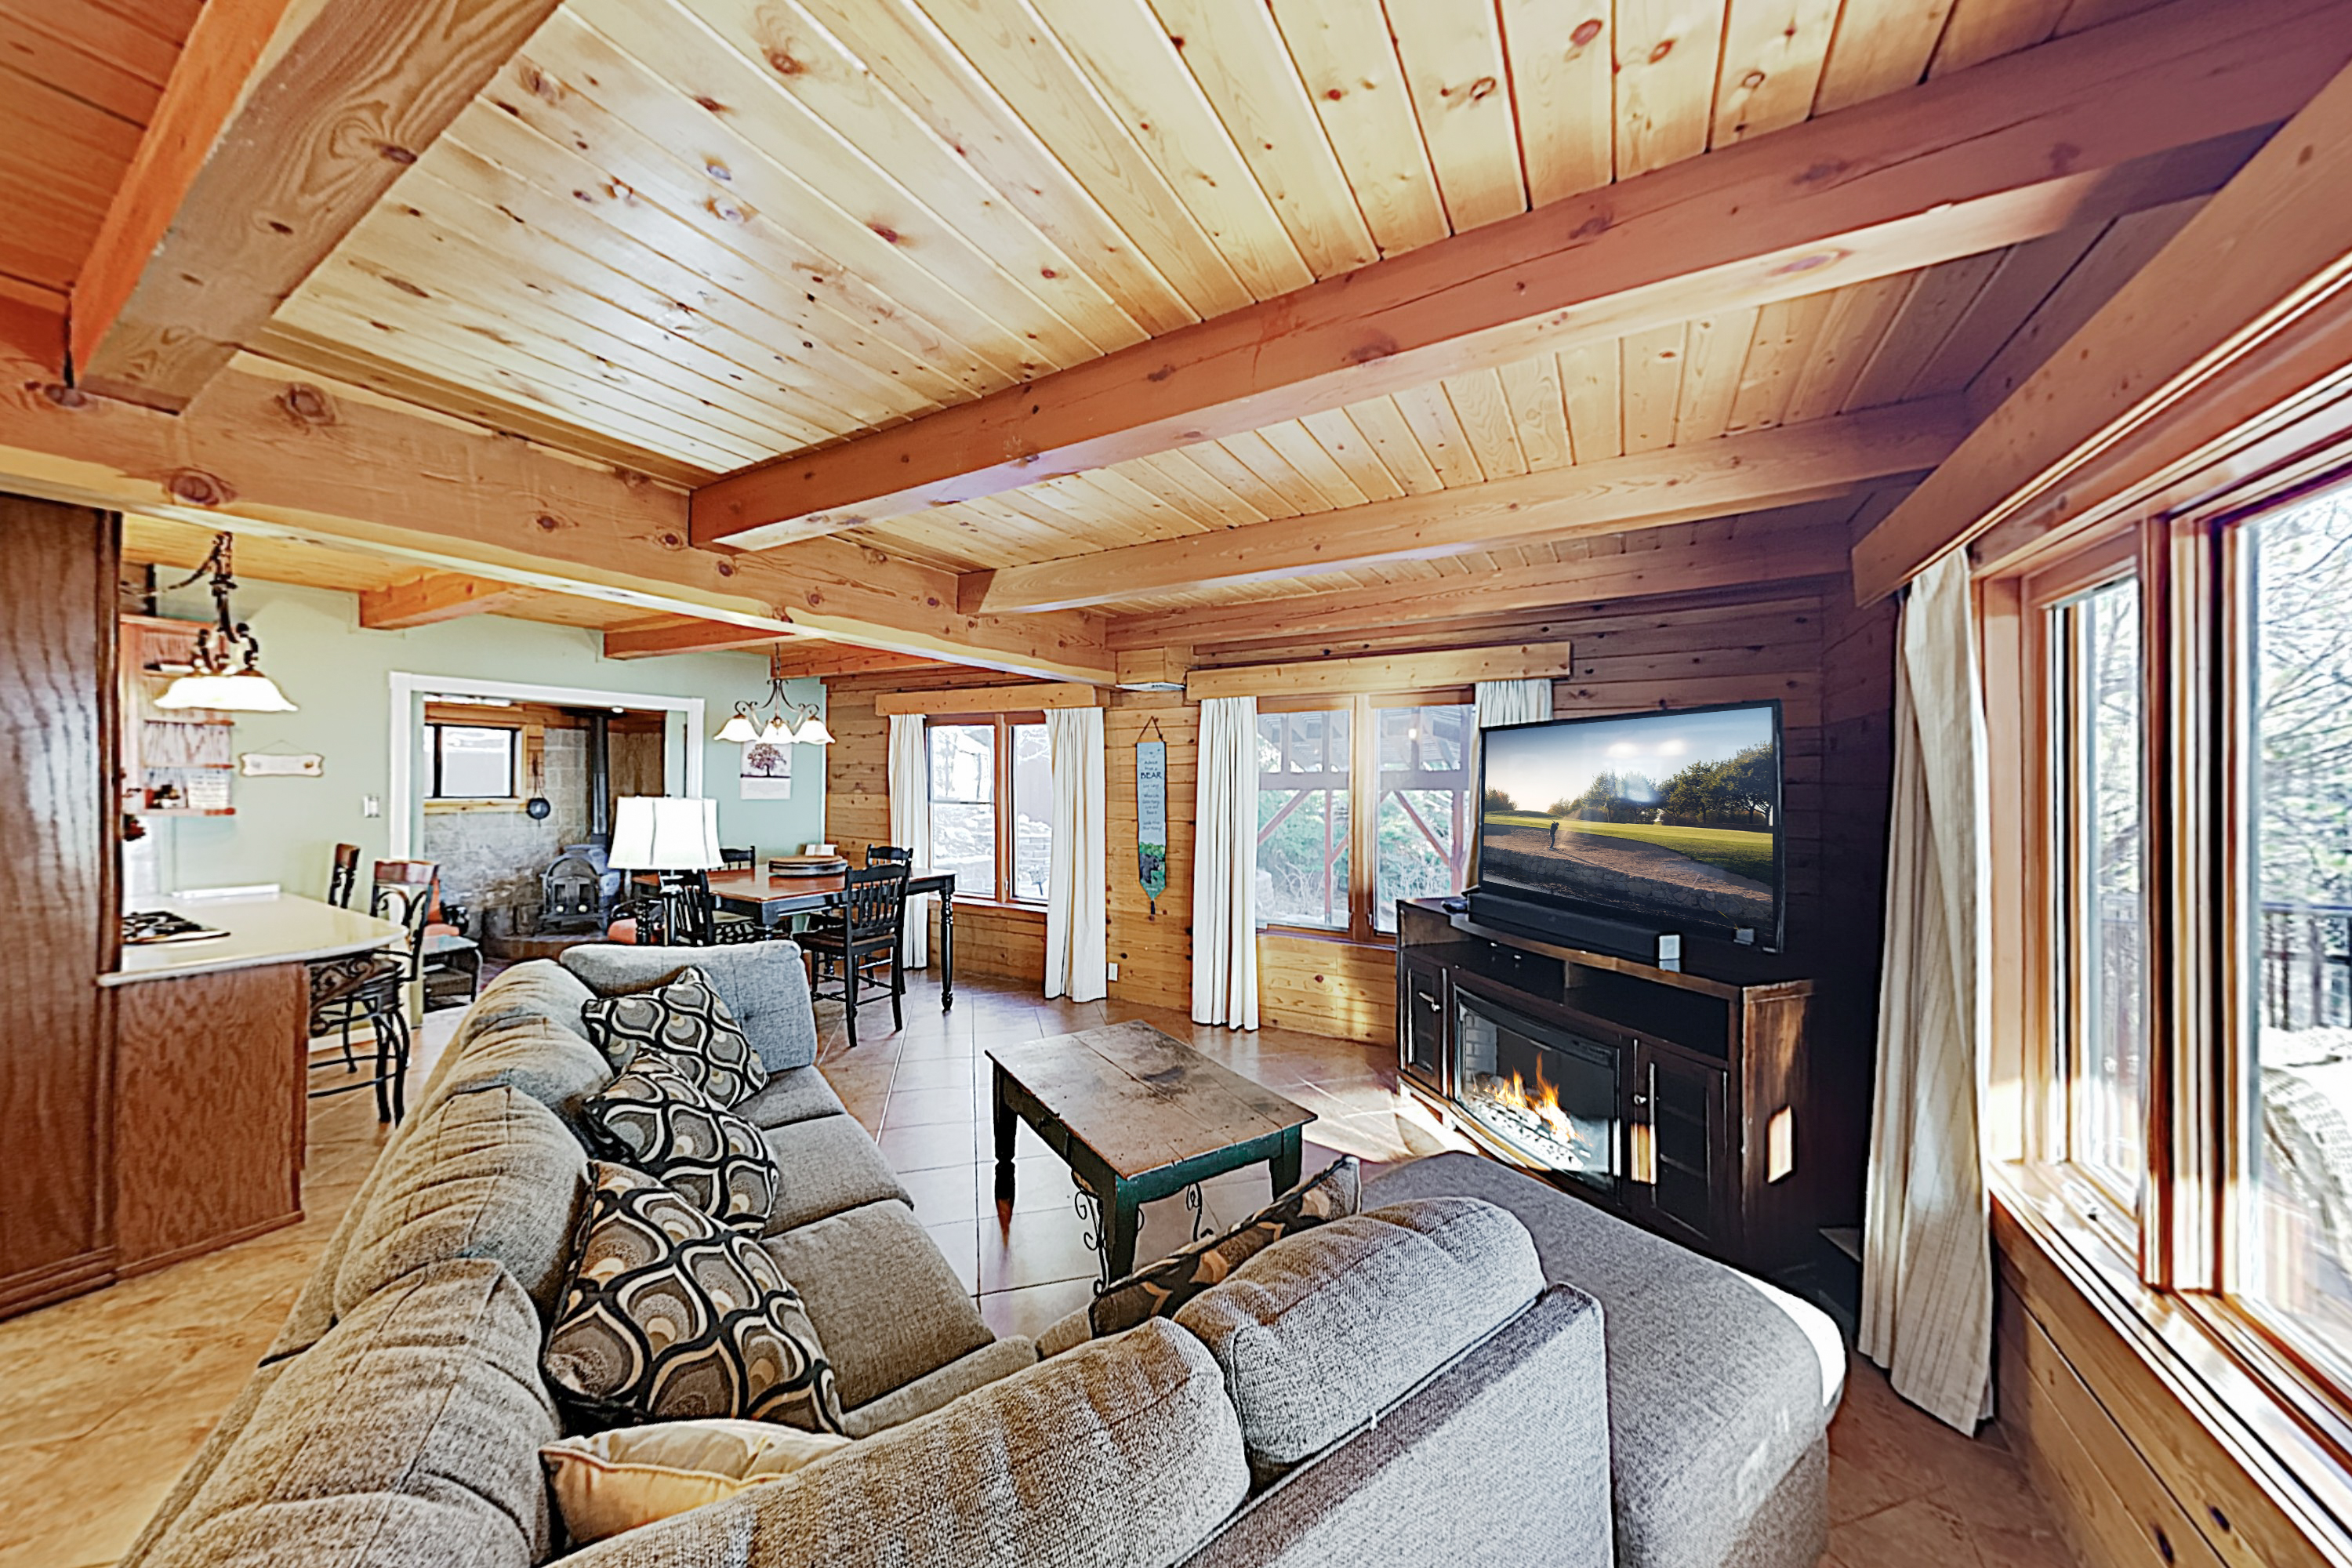 Running Springs CA Vacation Rental Welcome to Running